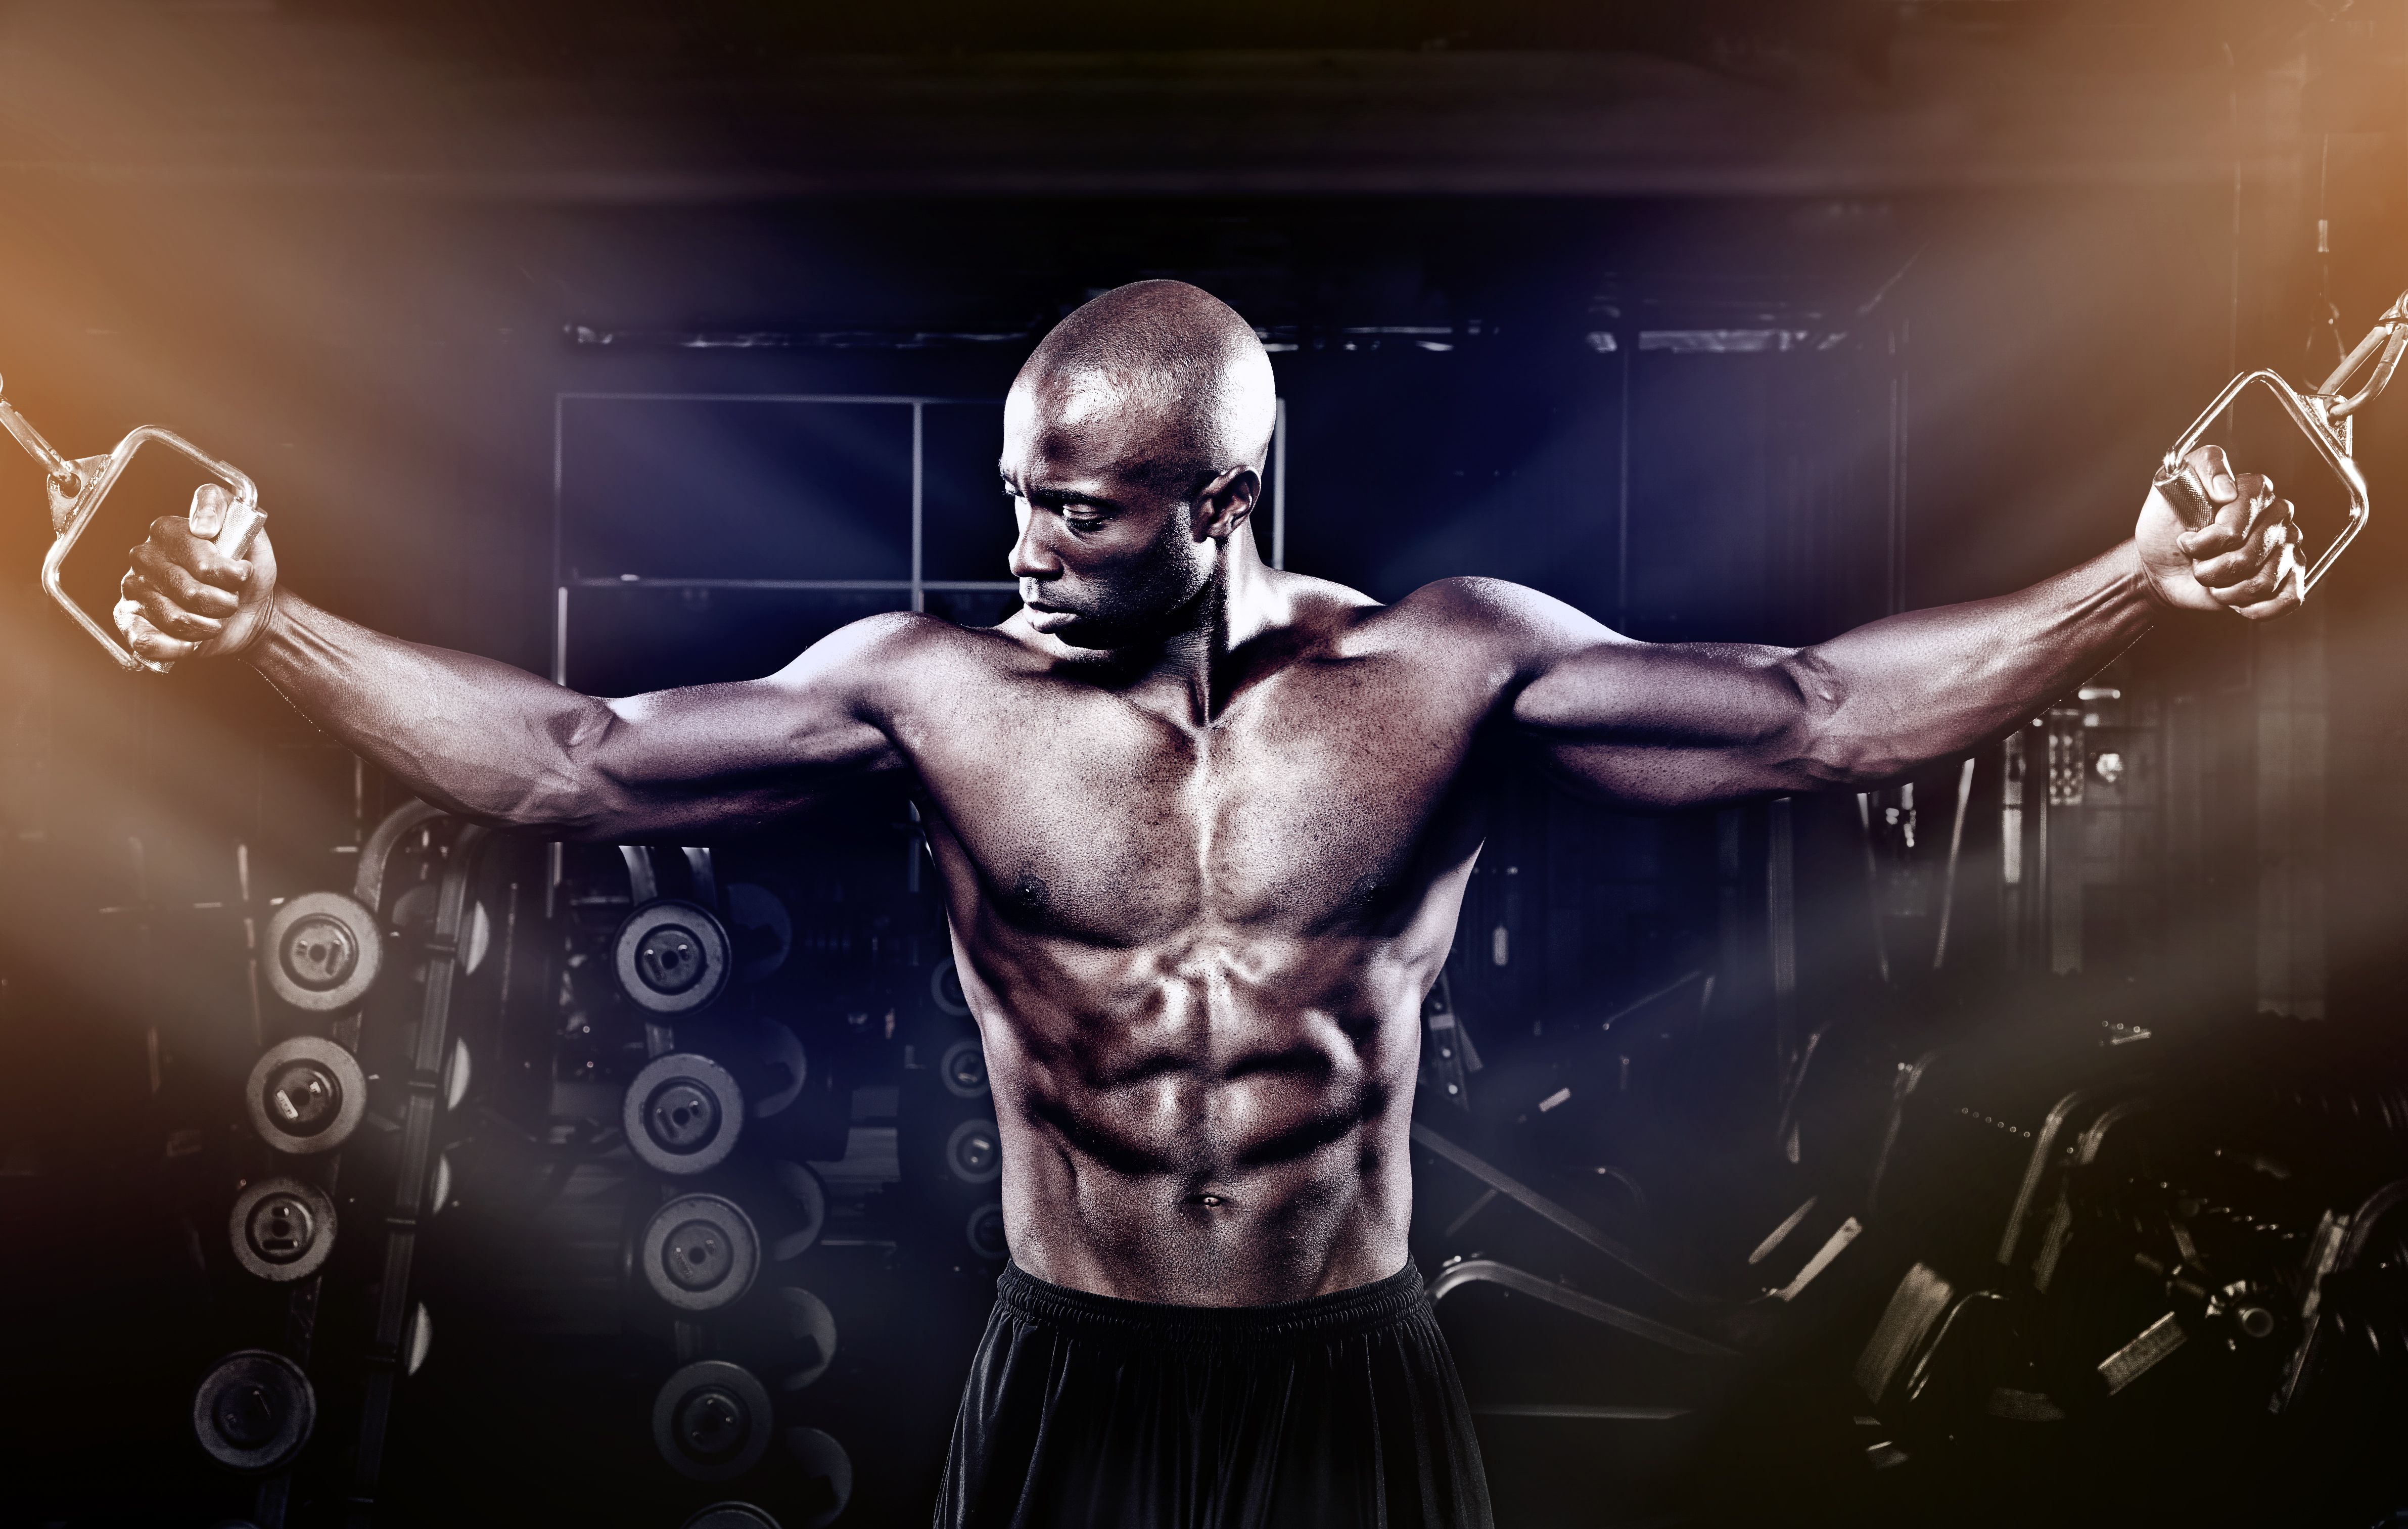 15 Best Chest Workouts For Men - At-Home Chest And Pec Exercises